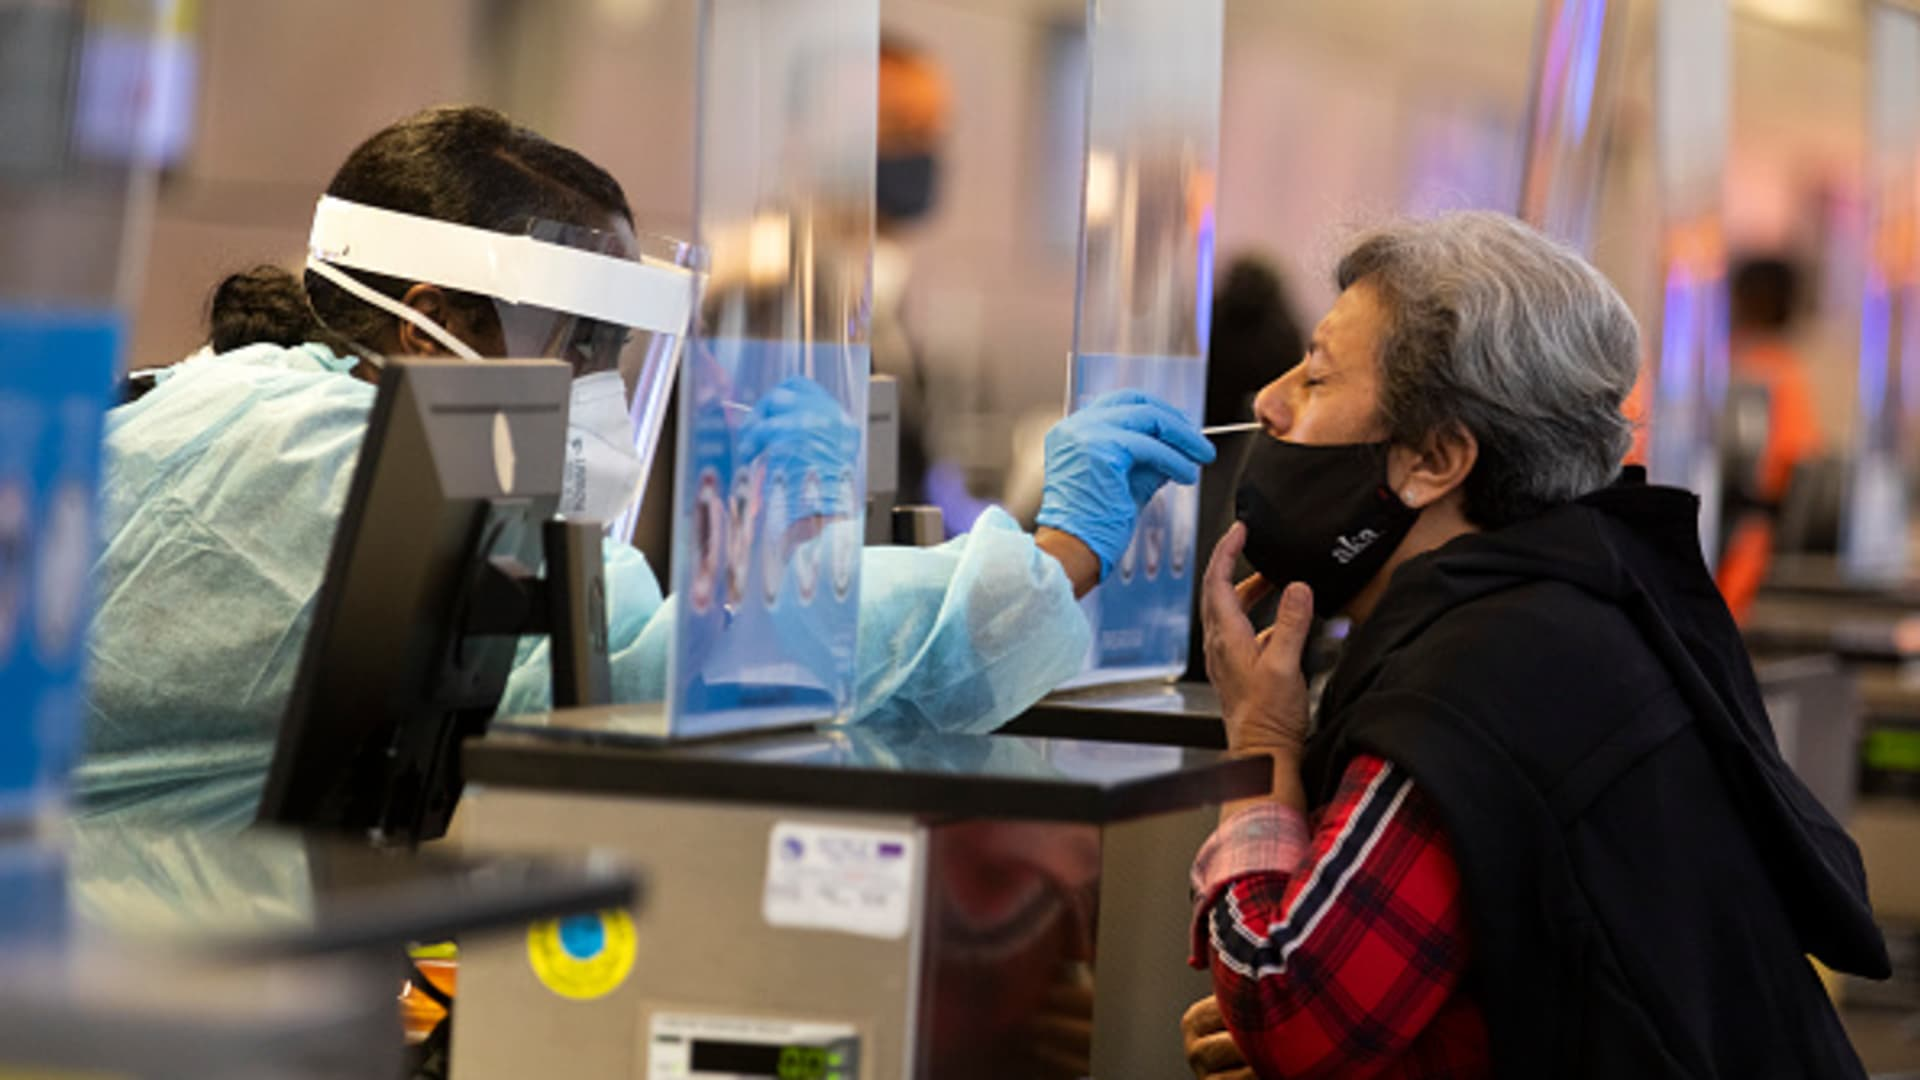 During the global coronavirus pandemic Ana Ramos, right, is being tested for covid19 in Tom Bradley international at LAX on Tuesday, Nov. 17, 2020 in Los Angeles, CA.